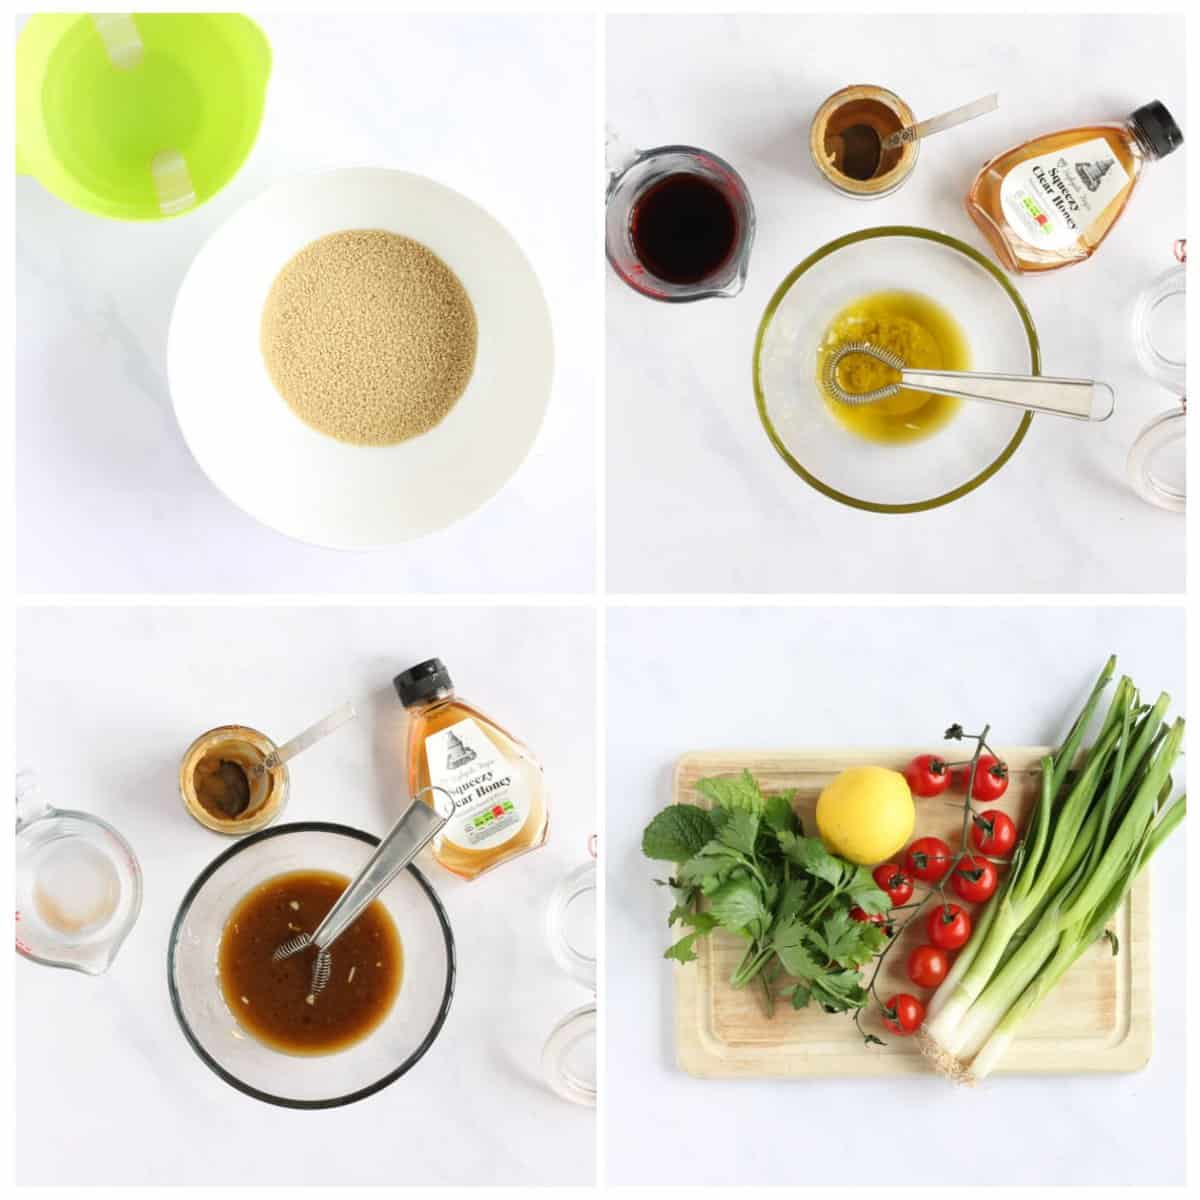 Step by step photo instructions for making halloumi couscous part 1